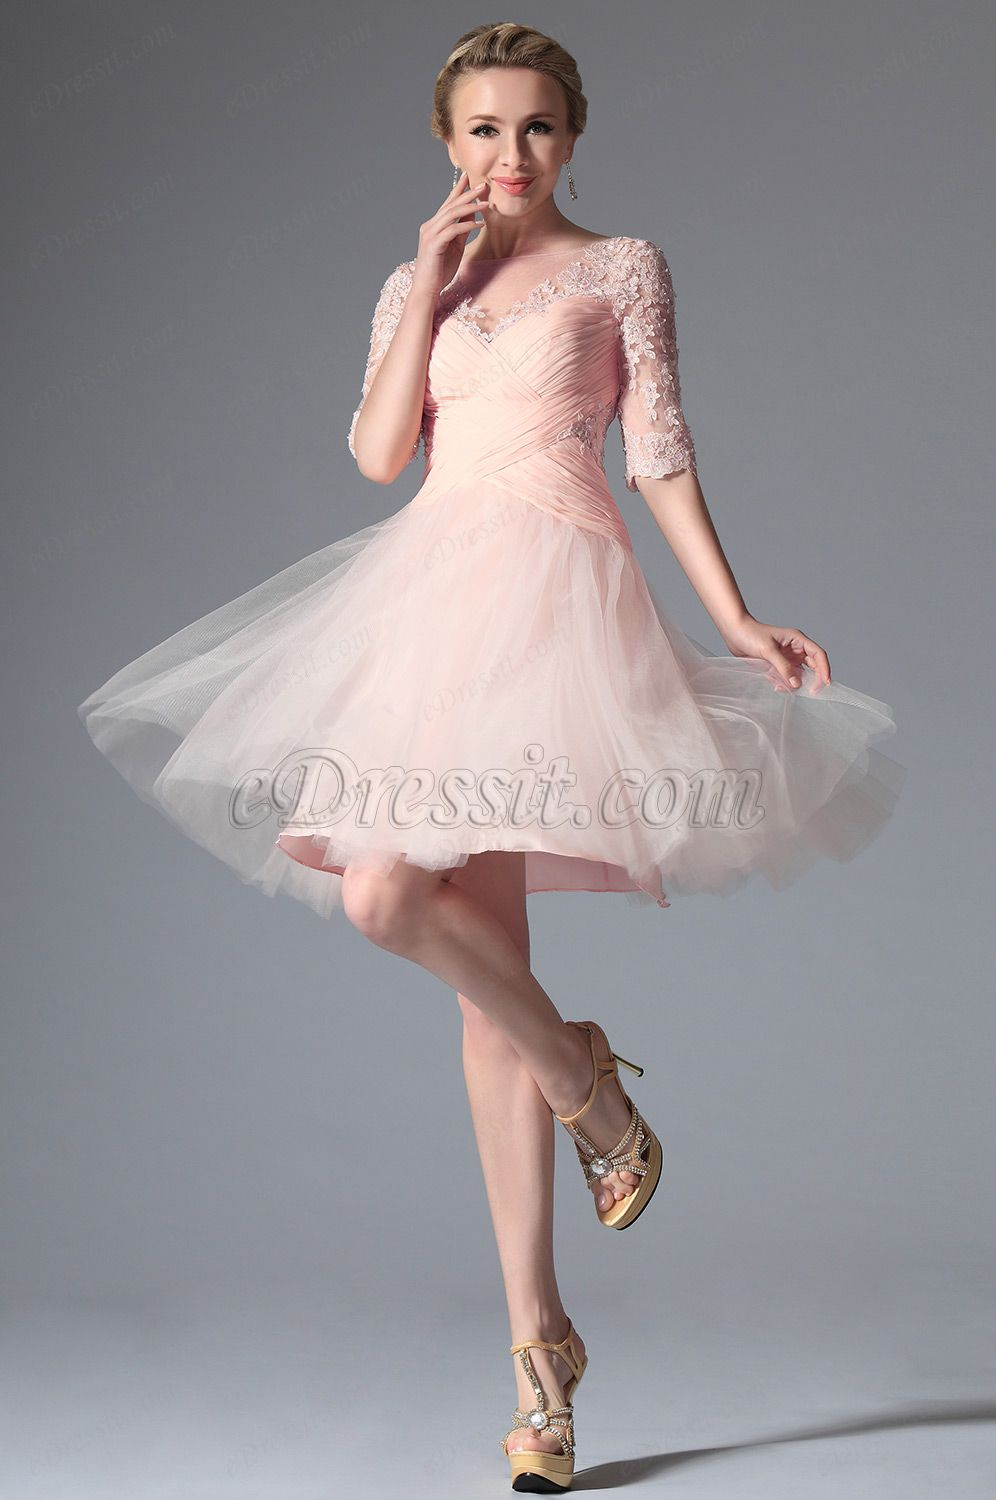 eDressit 2014 Neu Rosa Stilvoll Design Cocktail Kleid Party Kleid ...